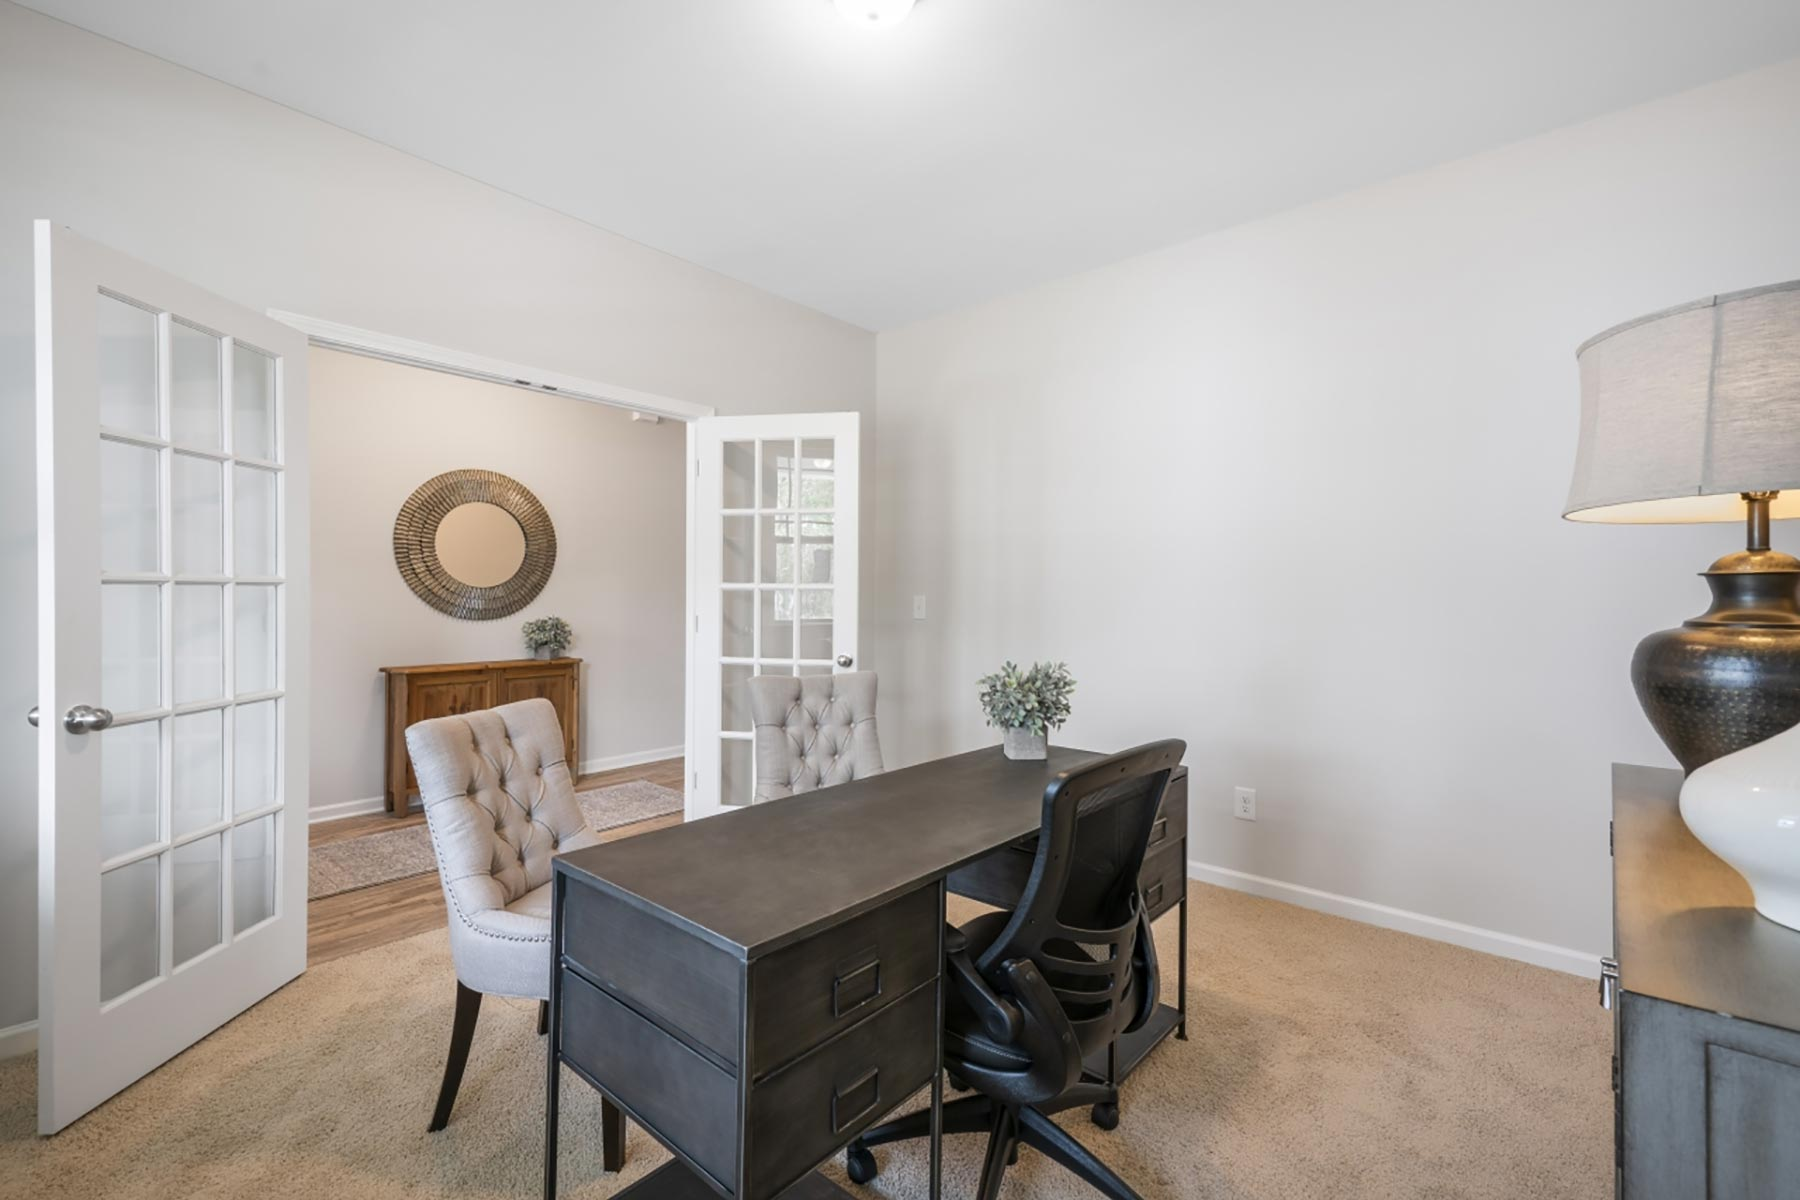 Evelyn Plan Study Room at Wendell Falls in Wendell North Carolina by Mattamy Homes